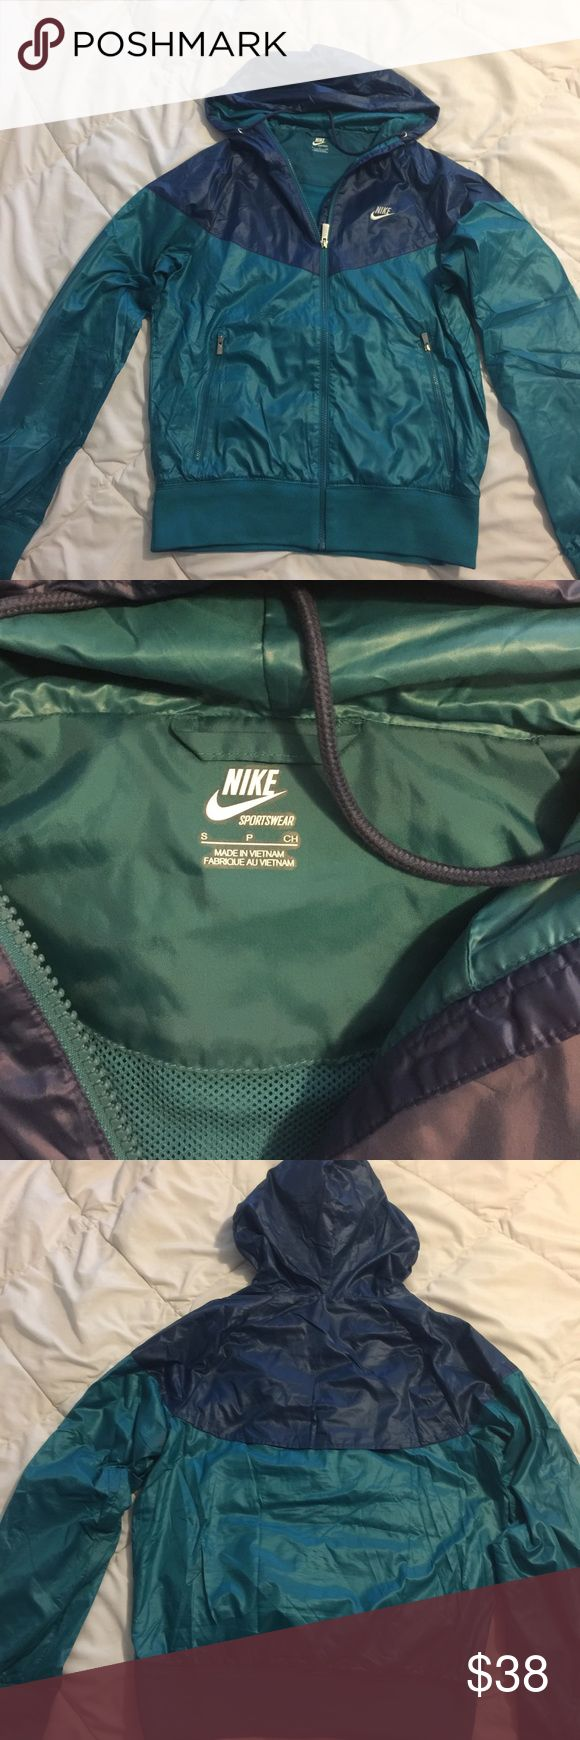 Nike running jacket. Men's small. Breathable running jacket, men's small fits like women's medium. Zip pockets and air vent in back are great for running. Never been worn to run in 😳. Nike Jackets & Coats Utility Jackets